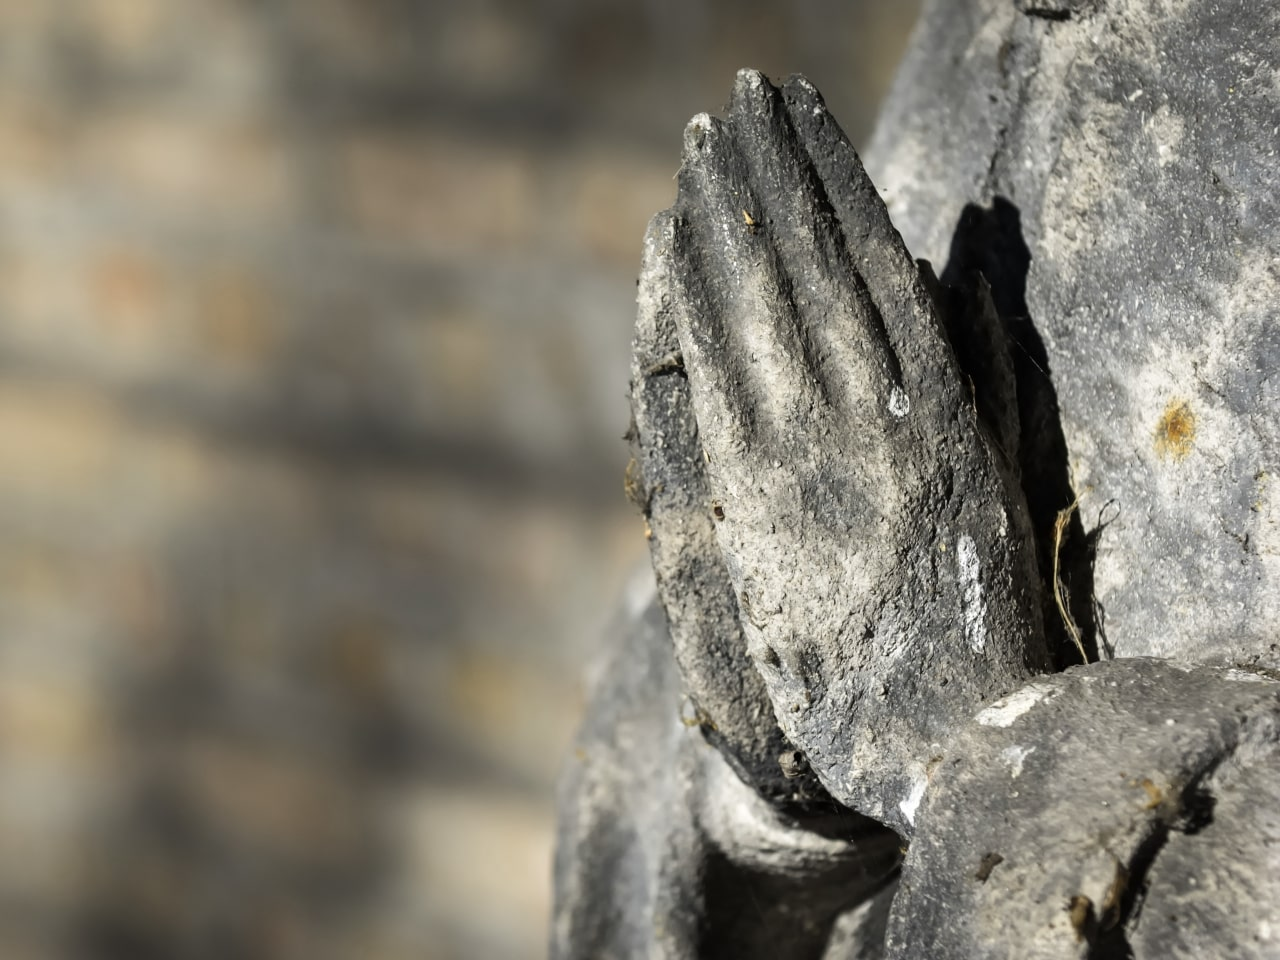 Statue with praying hands